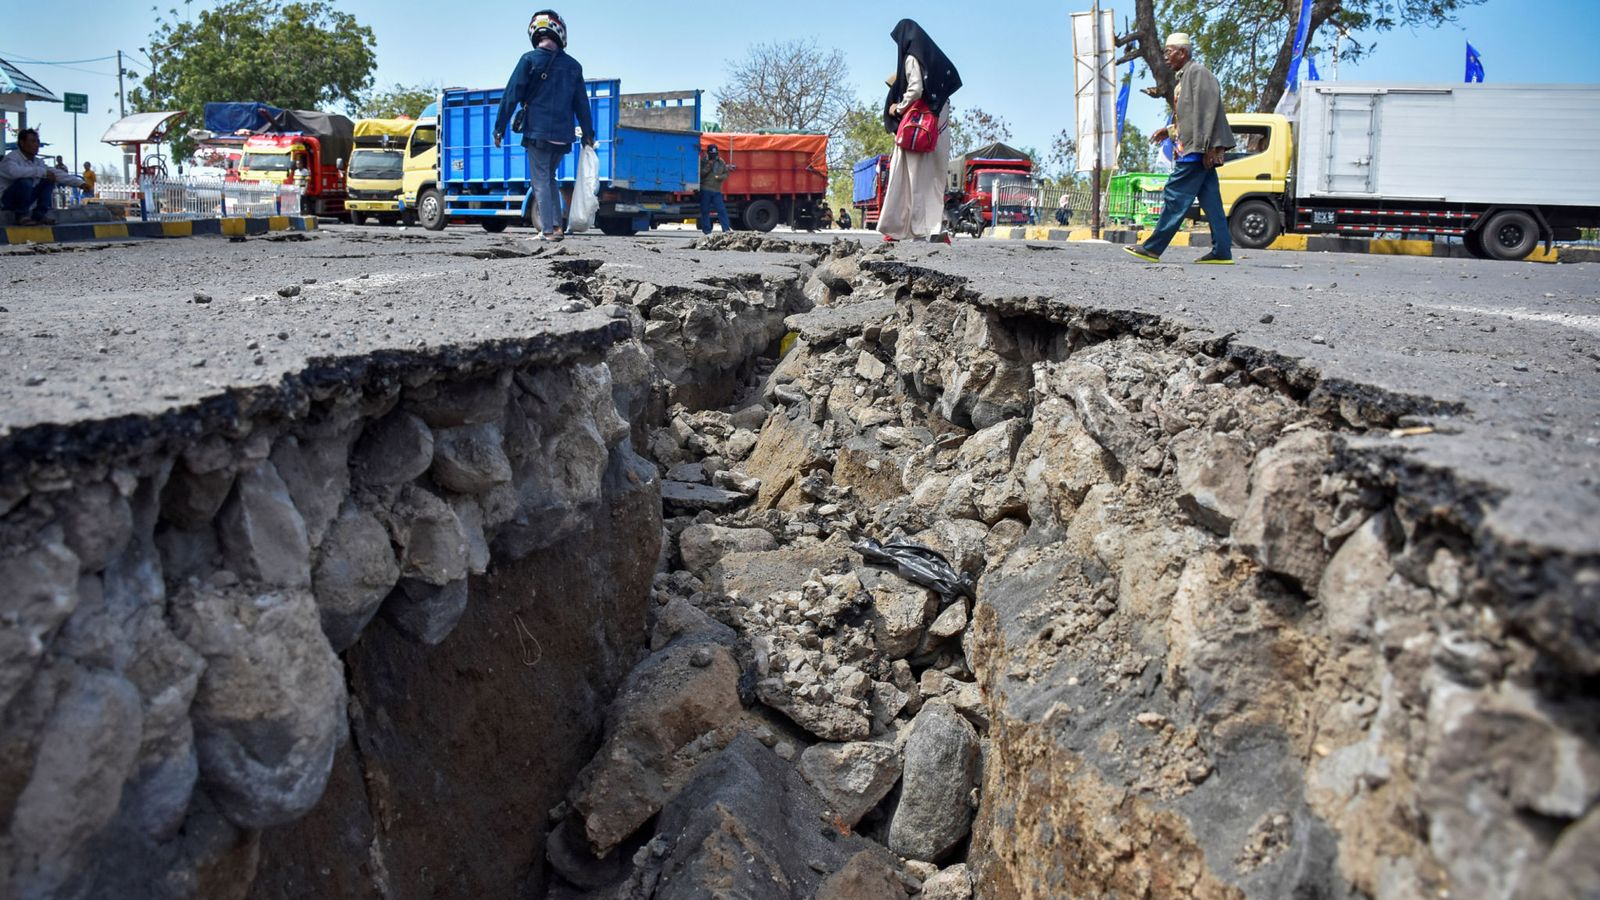 Ring of fire: Why Indonesia has so many earthquakes | World News | Sky News